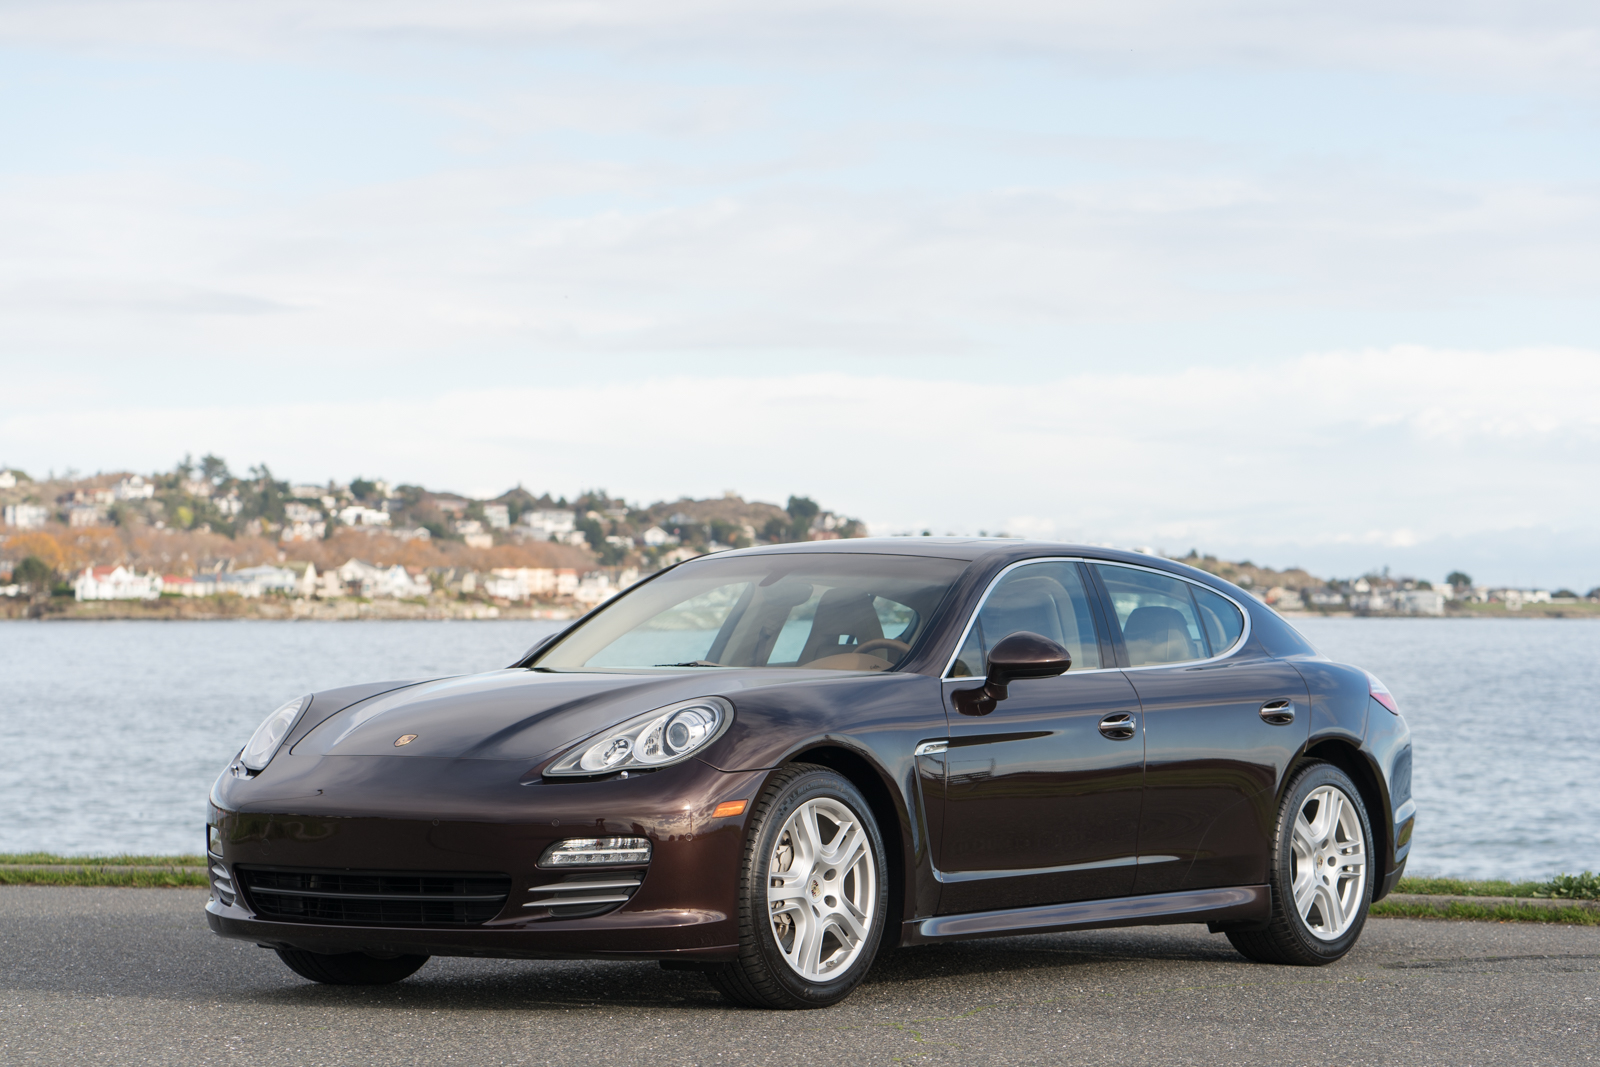 2010 Porsche Panamera 4S - 4 Year Warranty Included for sale